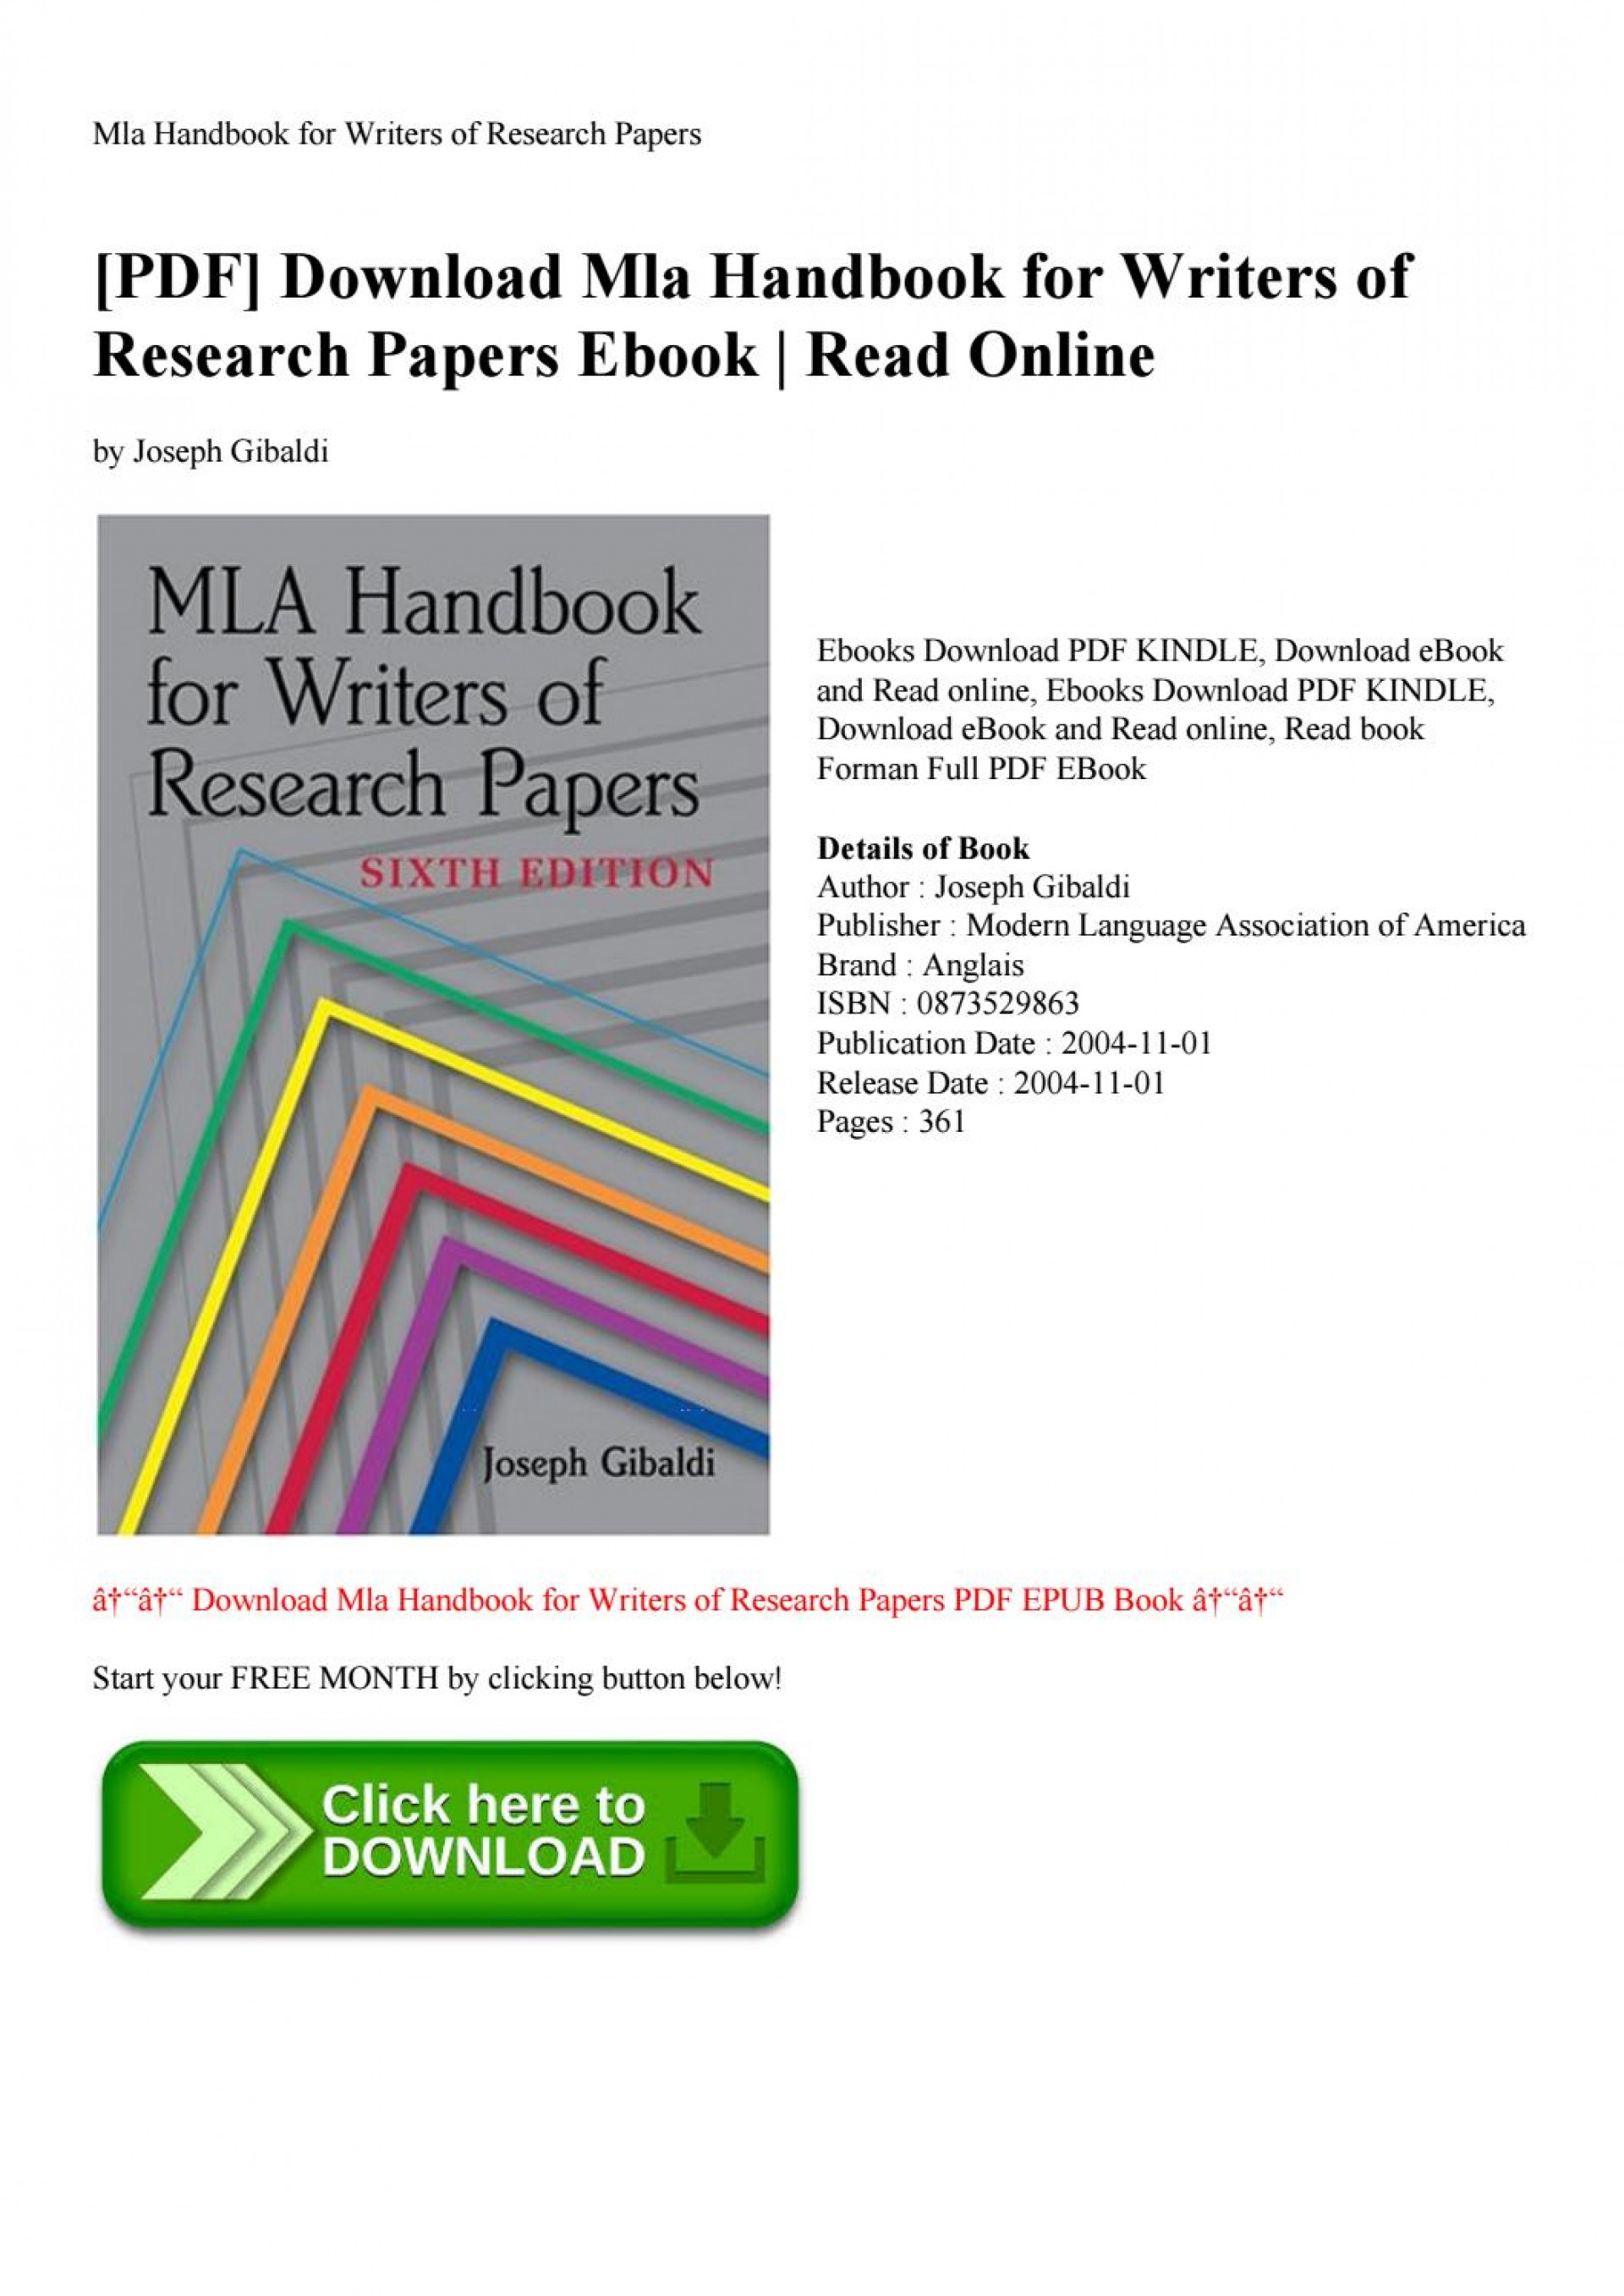 002 Mla Handbook For Writing Research Papers Pdf Paper Page 1 Beautiful Writers Of 7th Edition Free 6th 2009 1920